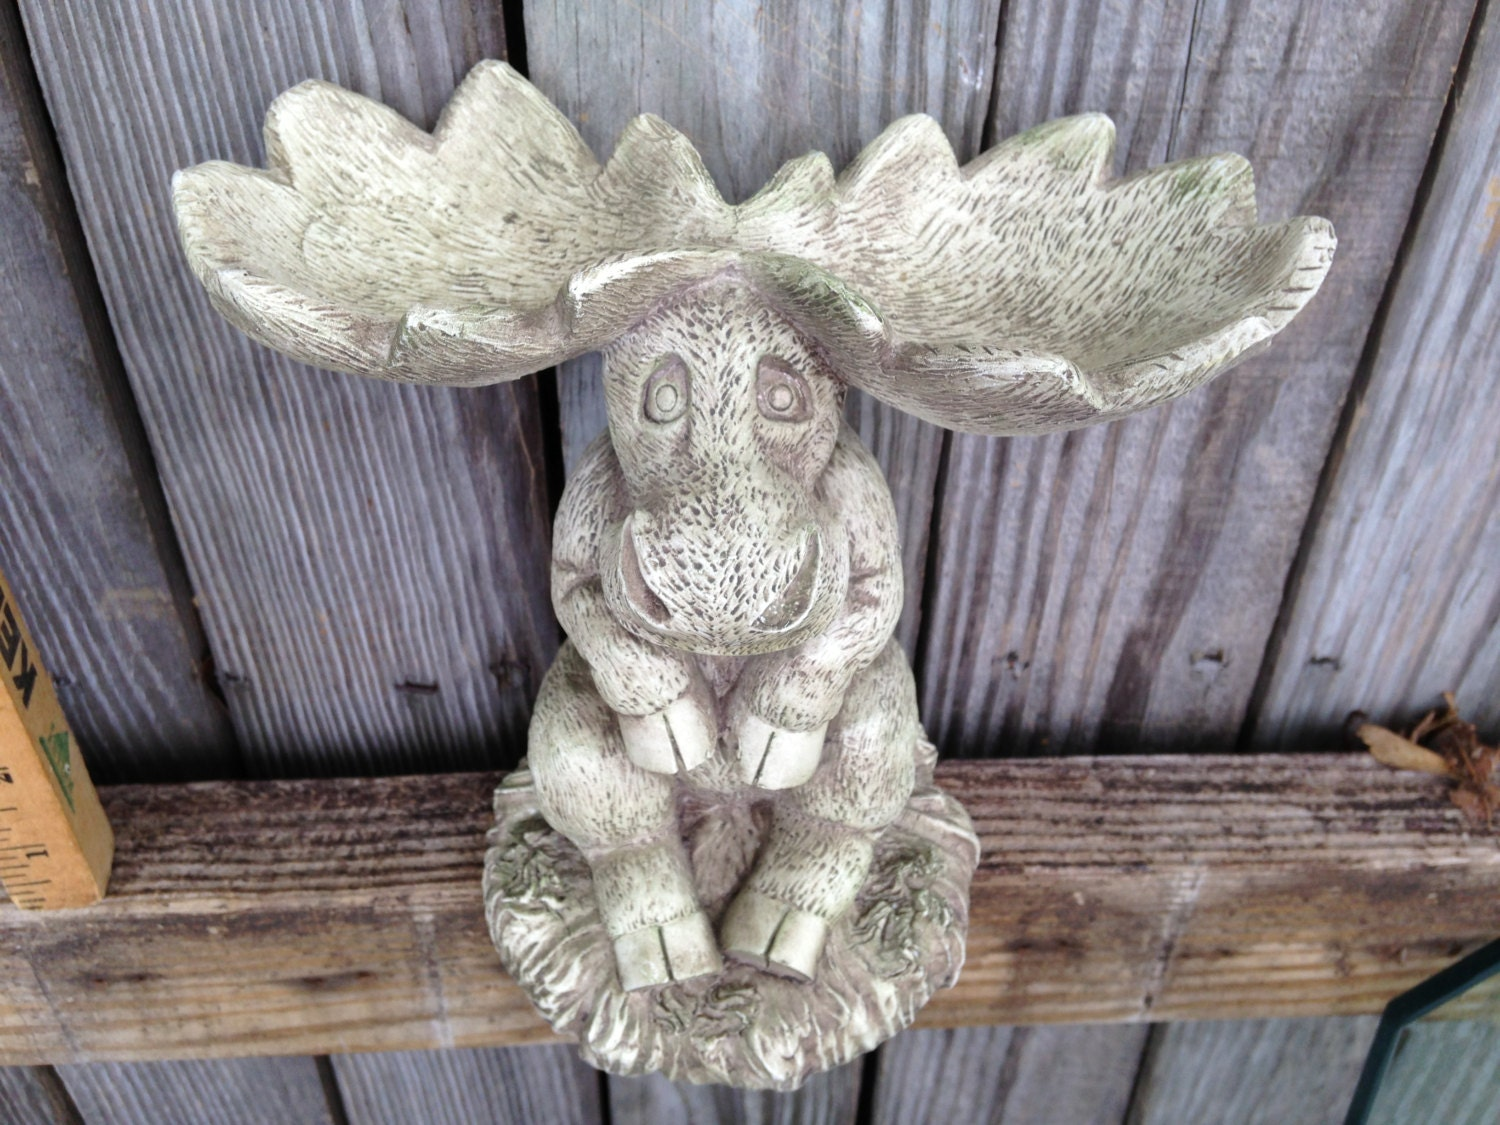 Moose statue moose art whimsical home decor garden art for Whimsical garden statues